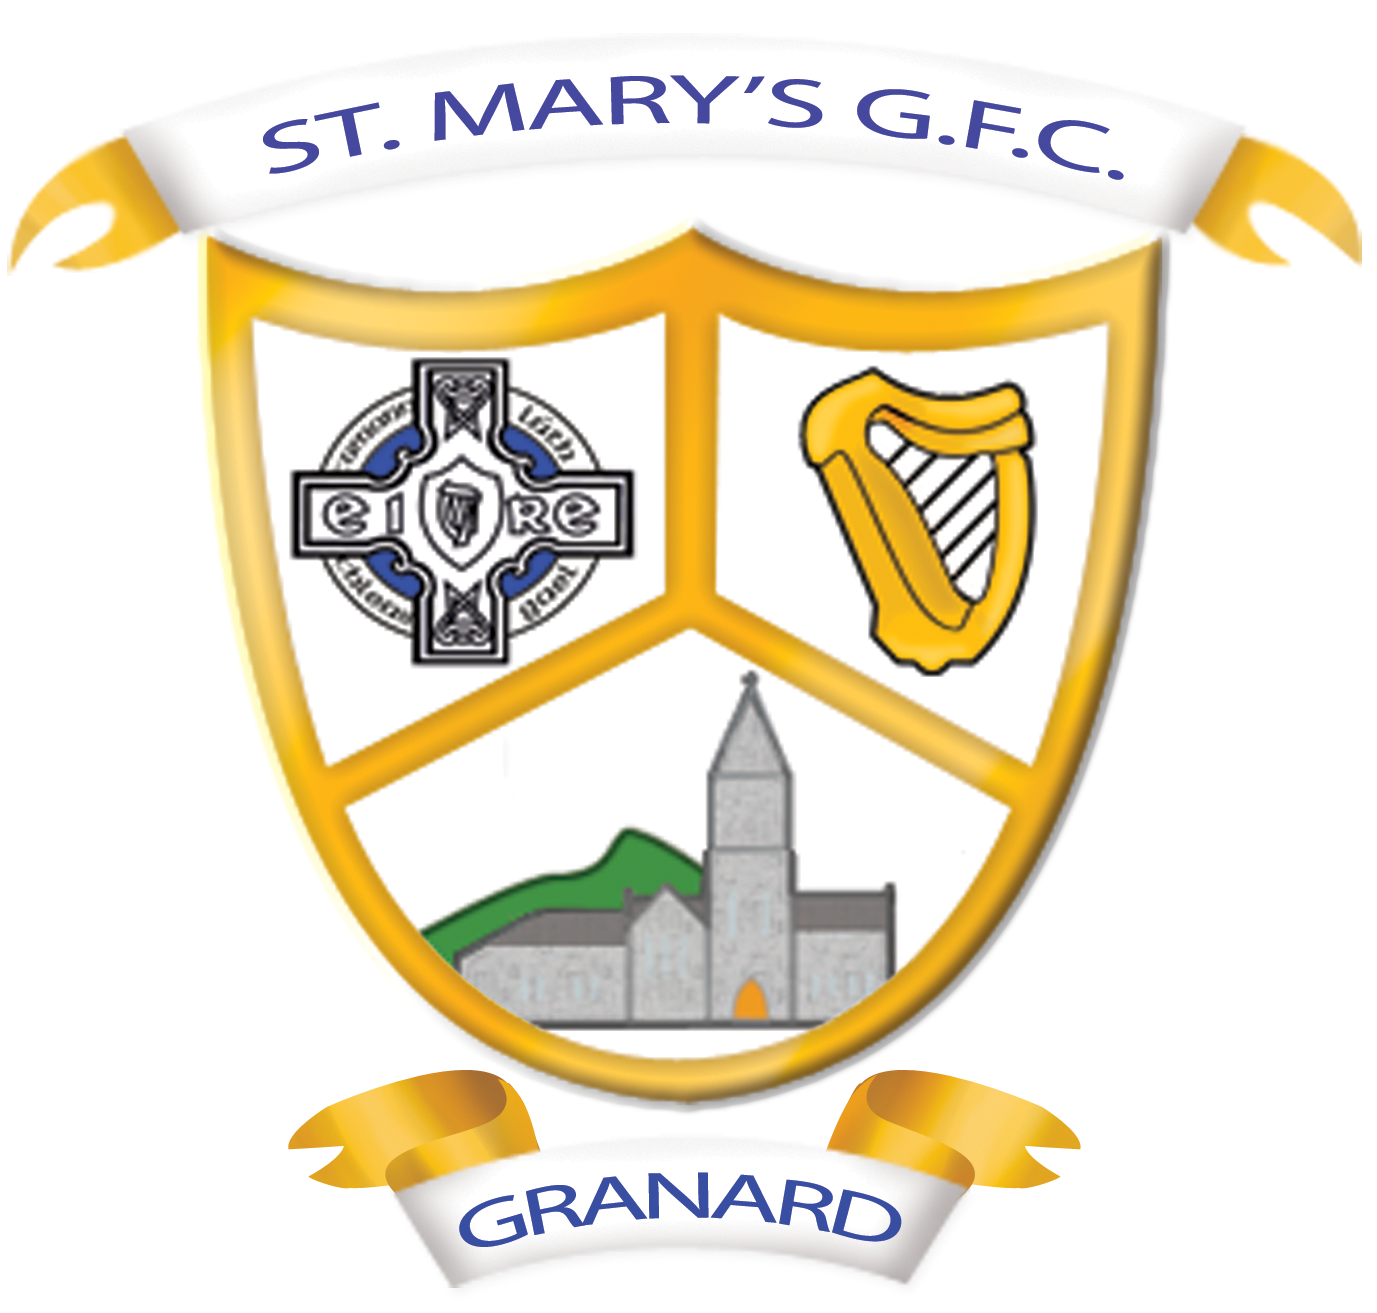 St Mary's GFC